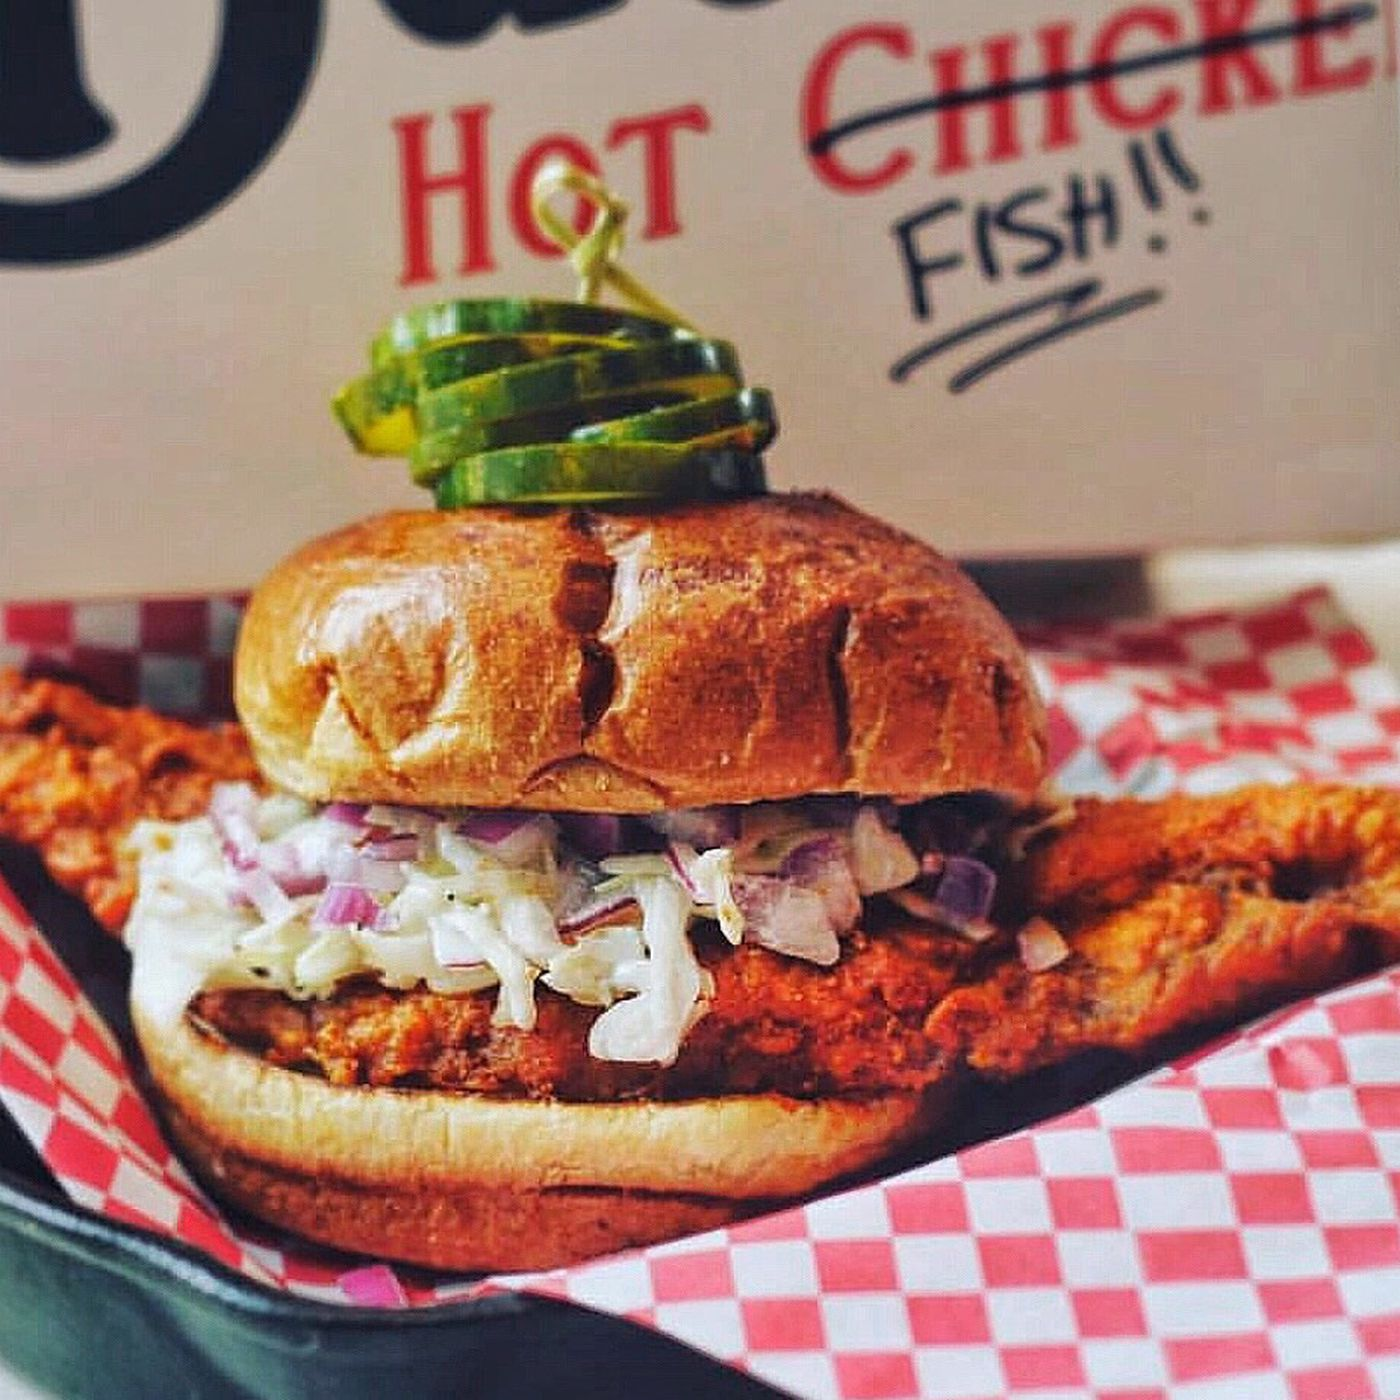 Best Fast Food Fish Sandwich 2020 Nashville Style Hot Chicken Has Made Its Way to Fish   Eater